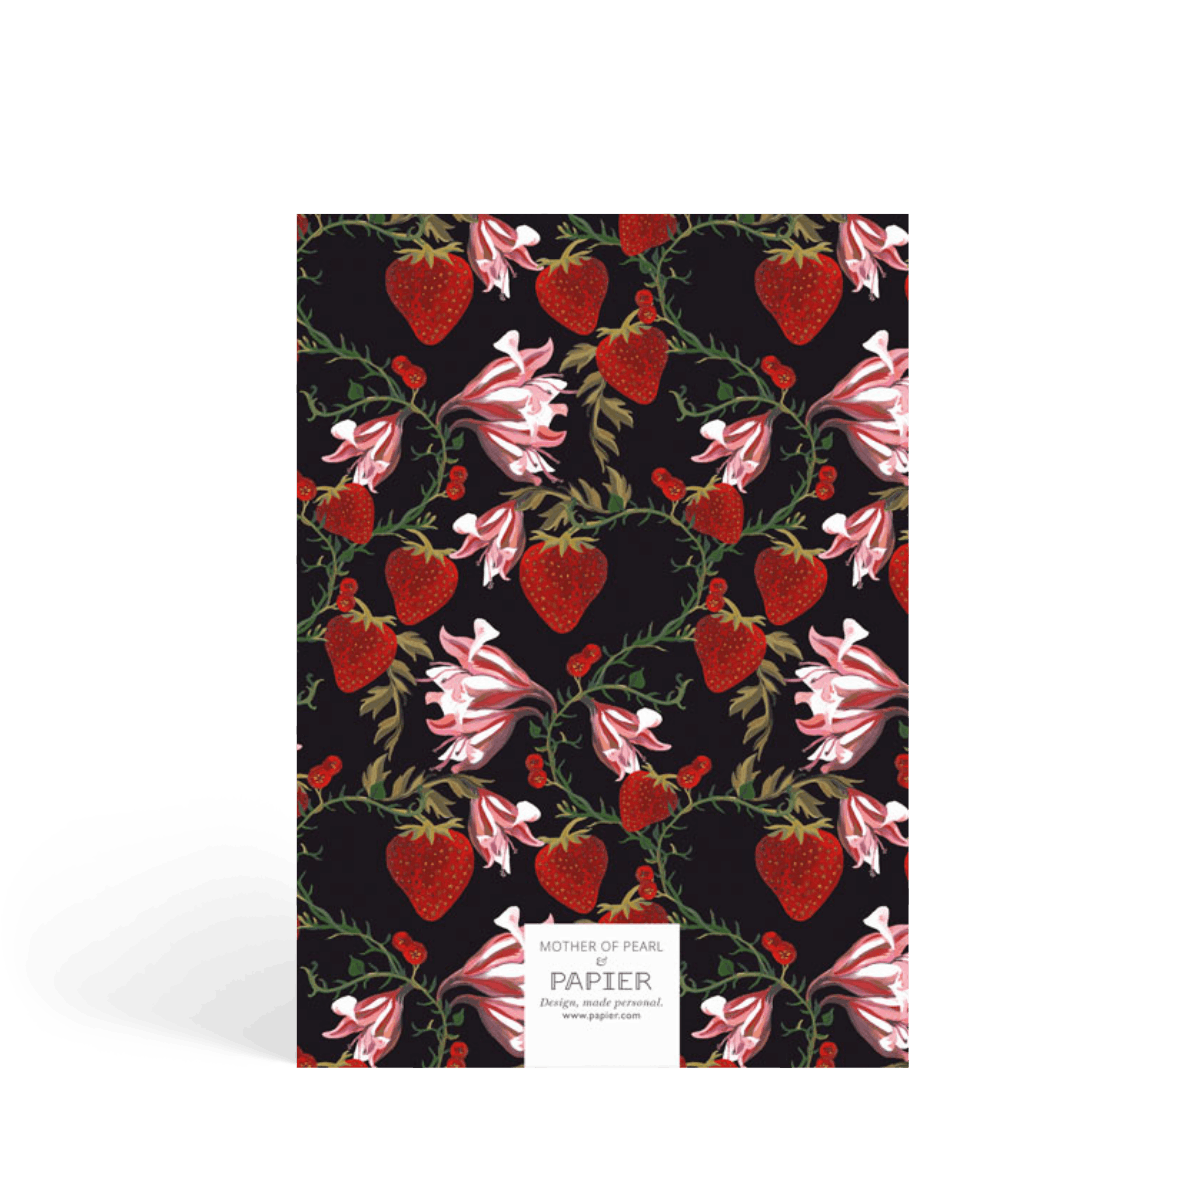 Https%3a%2f%2fwww.papier.com%2fproduct image%2f63939%2f5%2fstrawberry floral navy 15012 back 1548852894.png?ixlib=rb 1.1